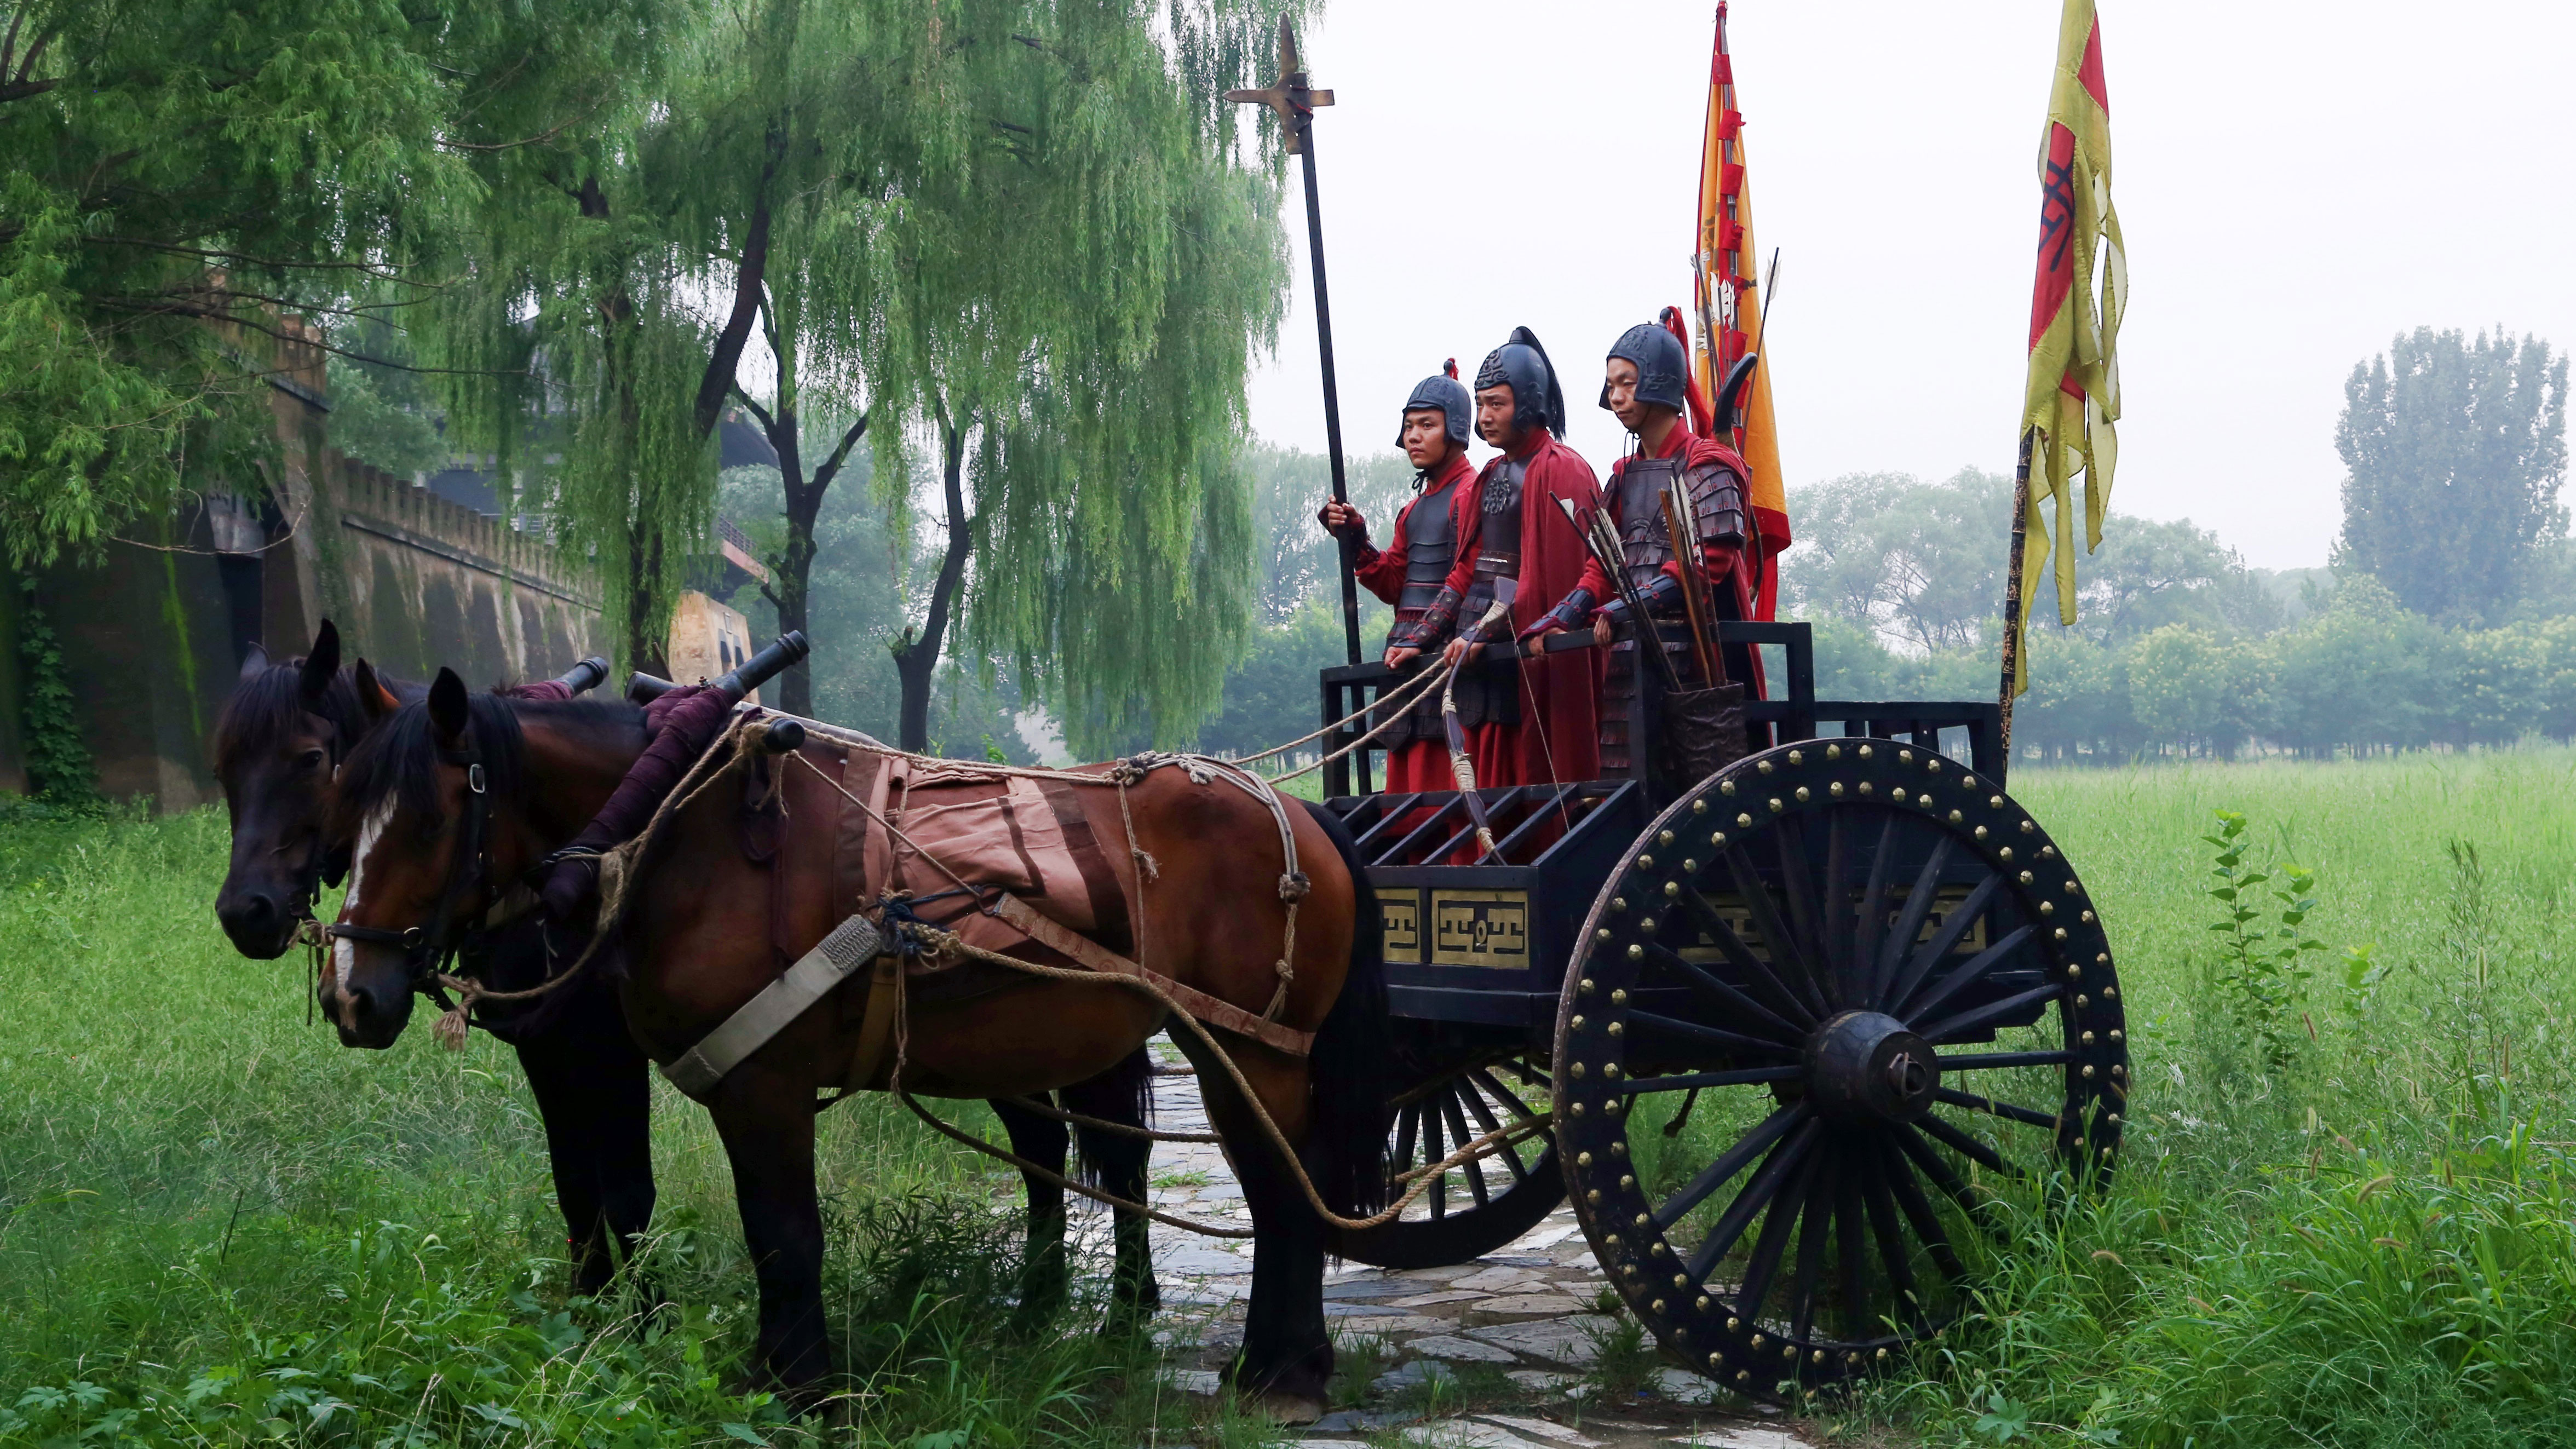 Actors dressed as ancient Chinese soldiers on chariot